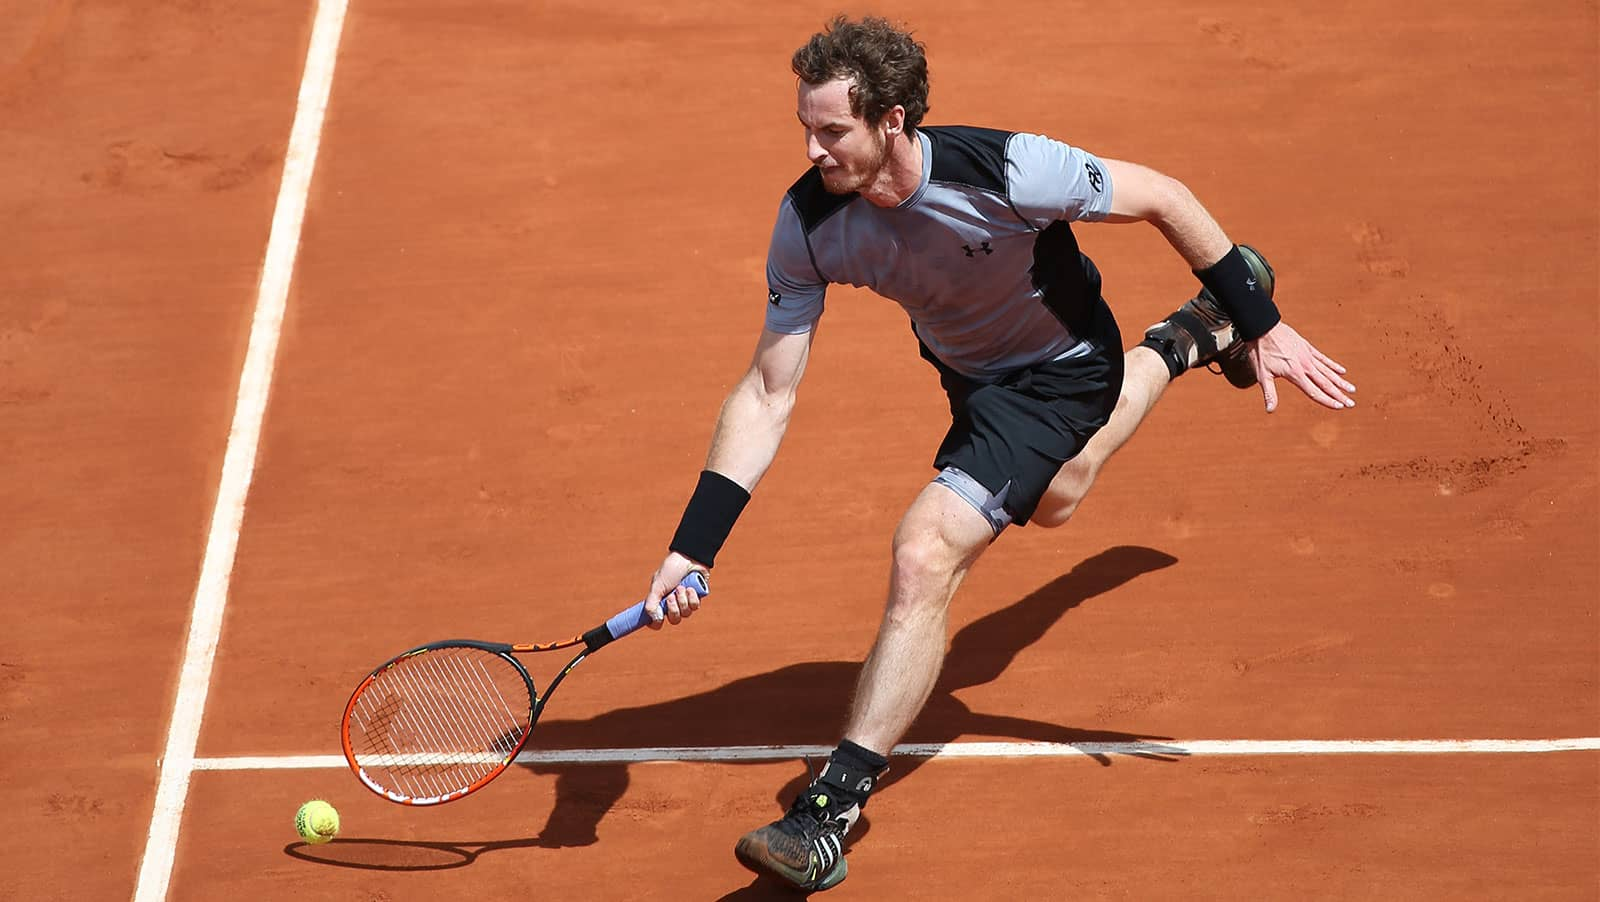 andy-murray-completes-amazing-comeback-to-win-european-open-final-min